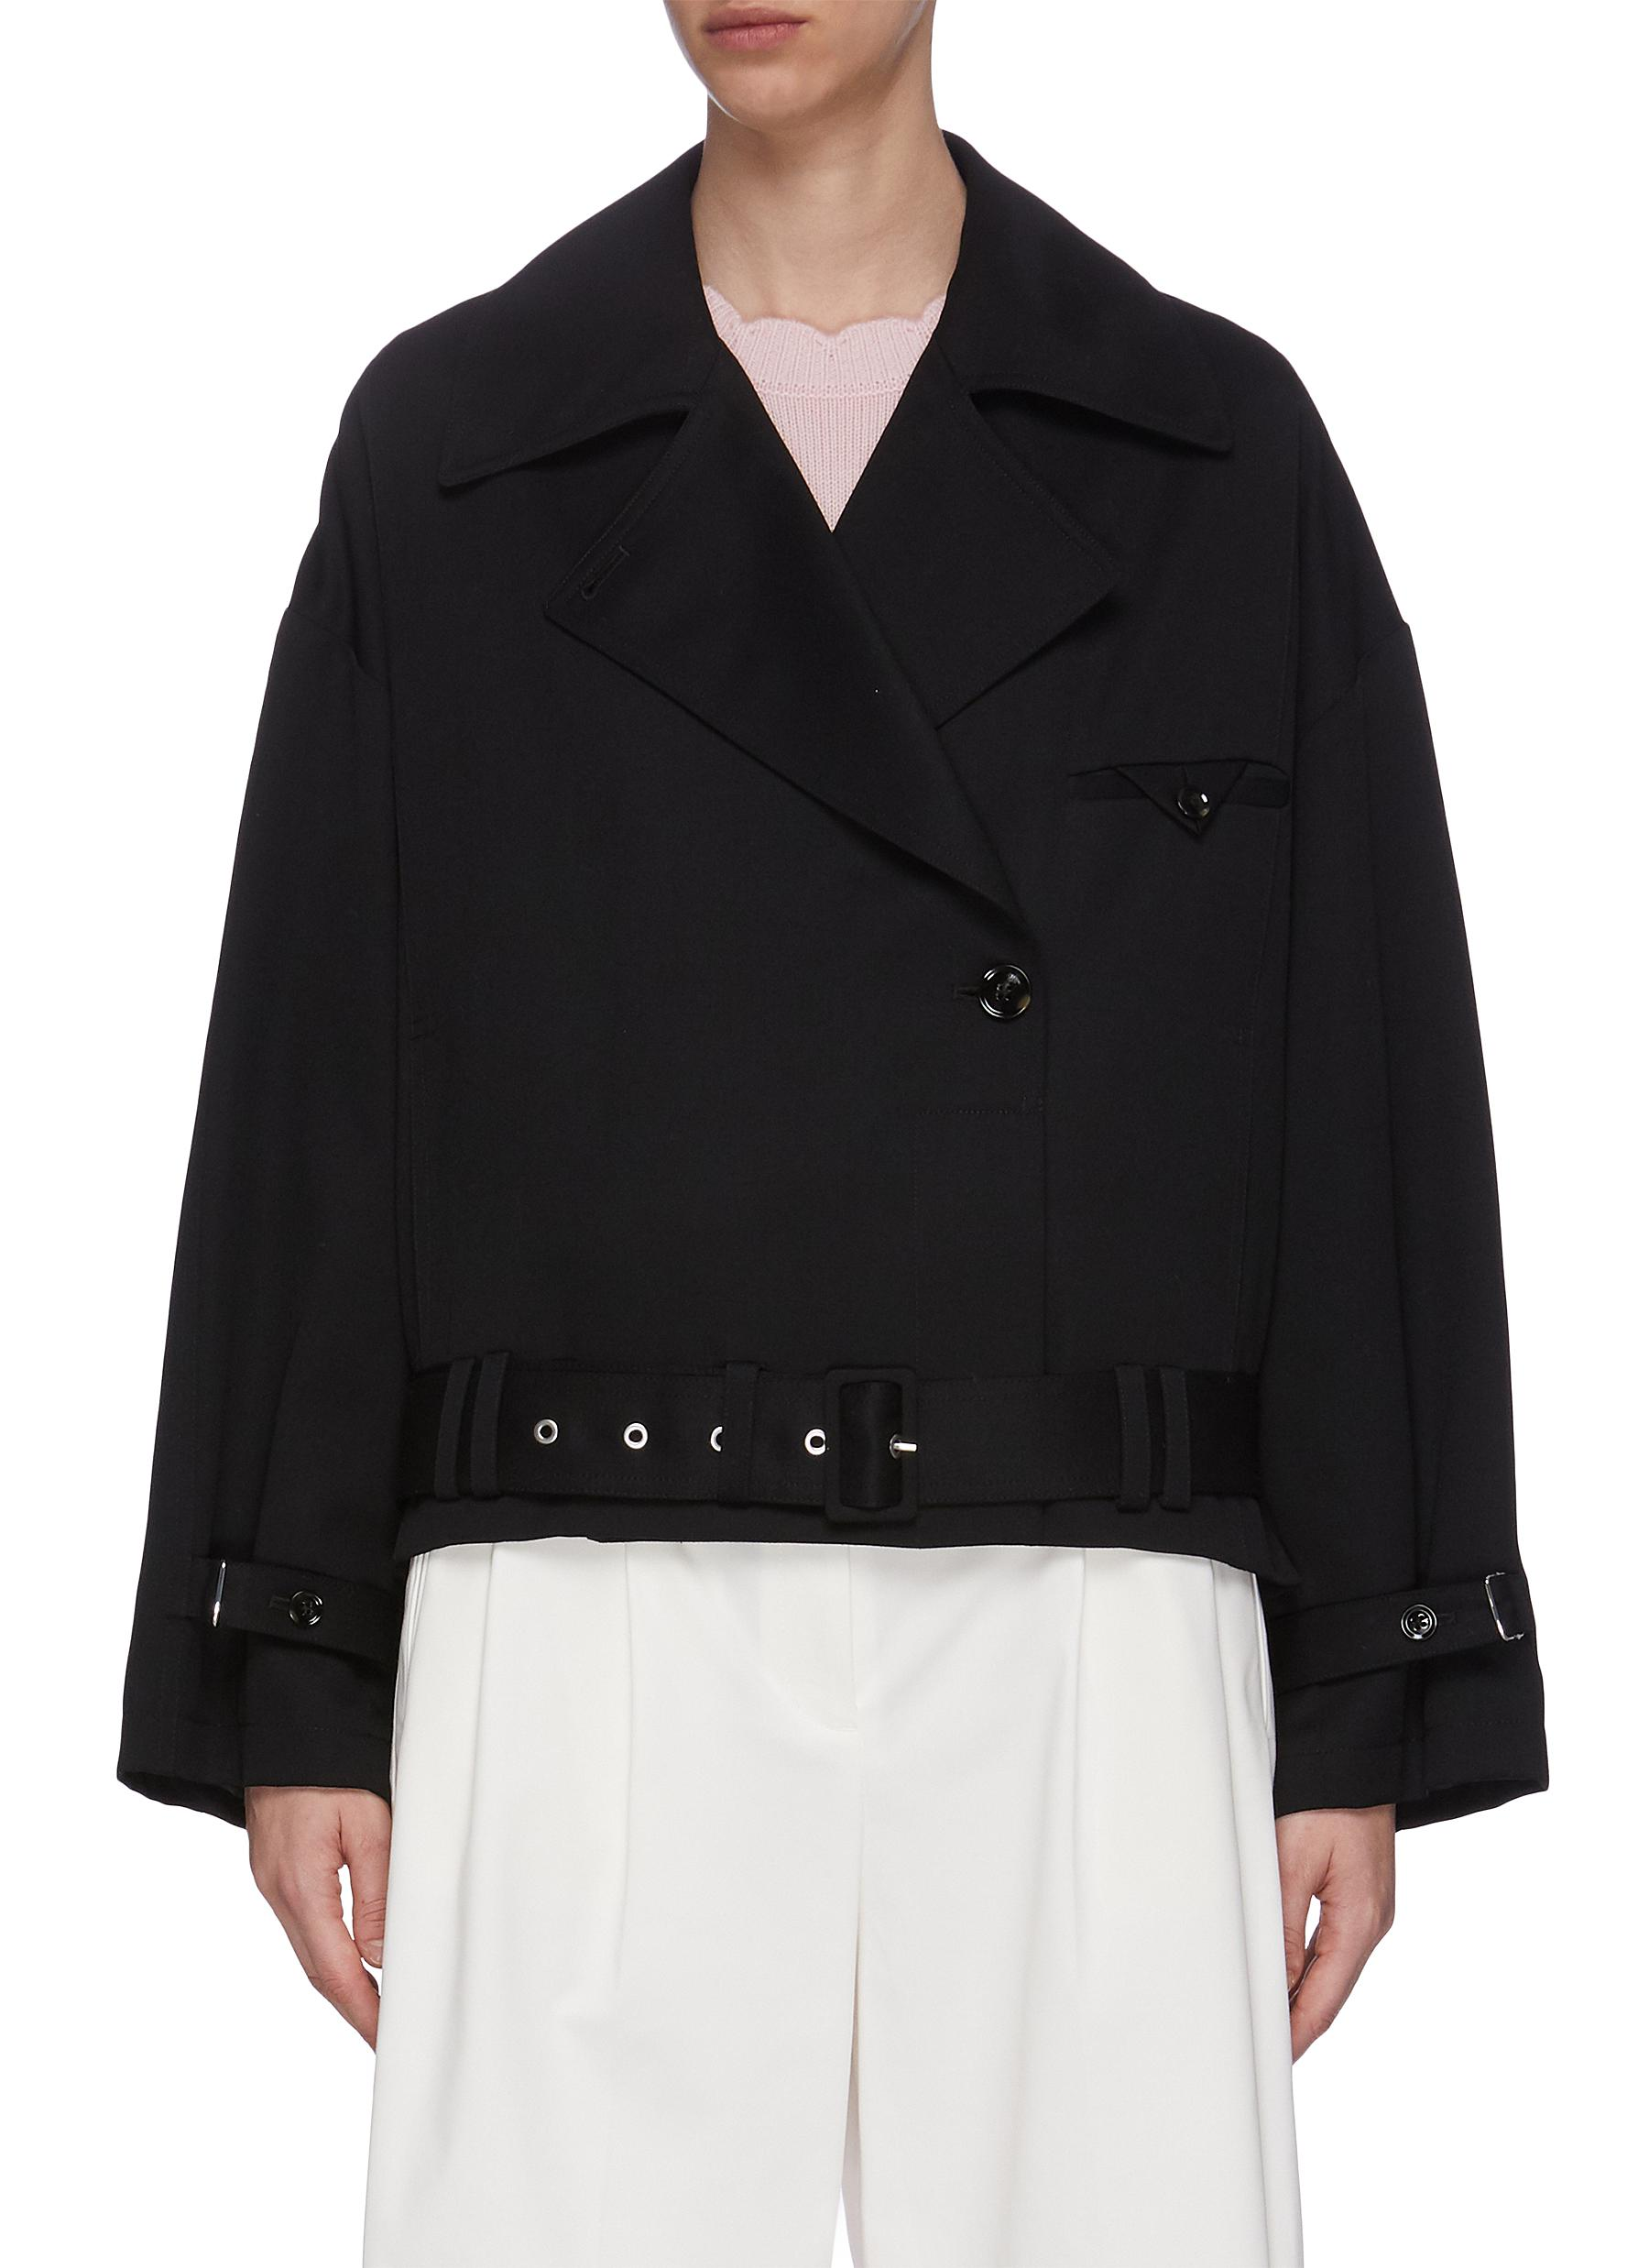 3.1 Phillip Lim BELTED WOOL TRENCH COAT